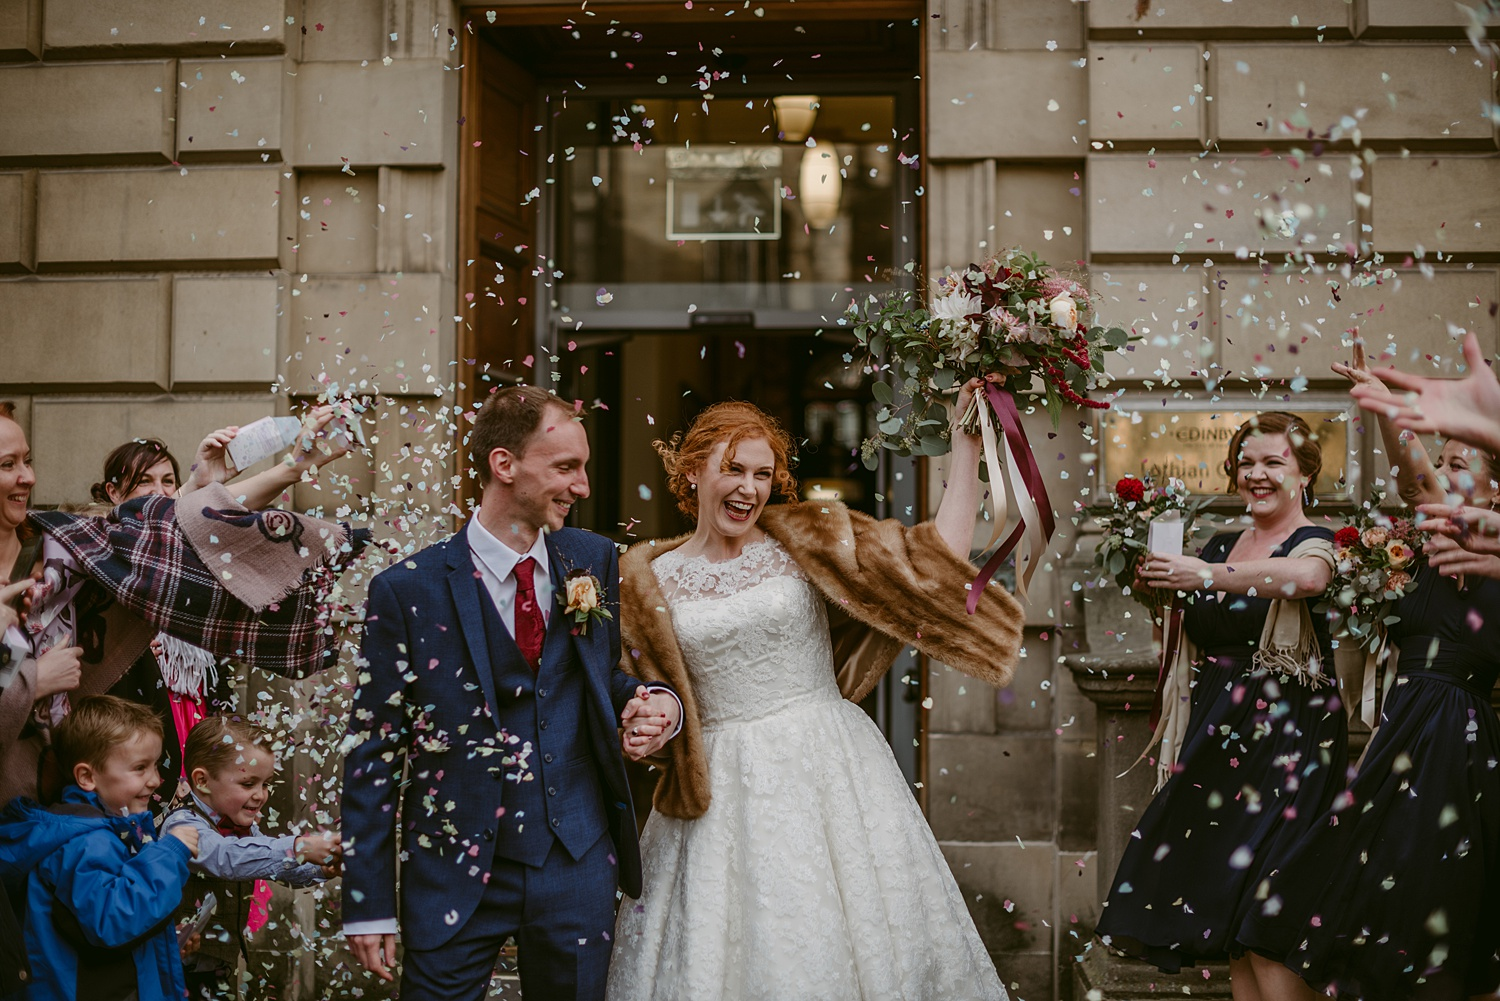 Claire-Fleck-Scottish-wedding-photography-2017__0037.jpg